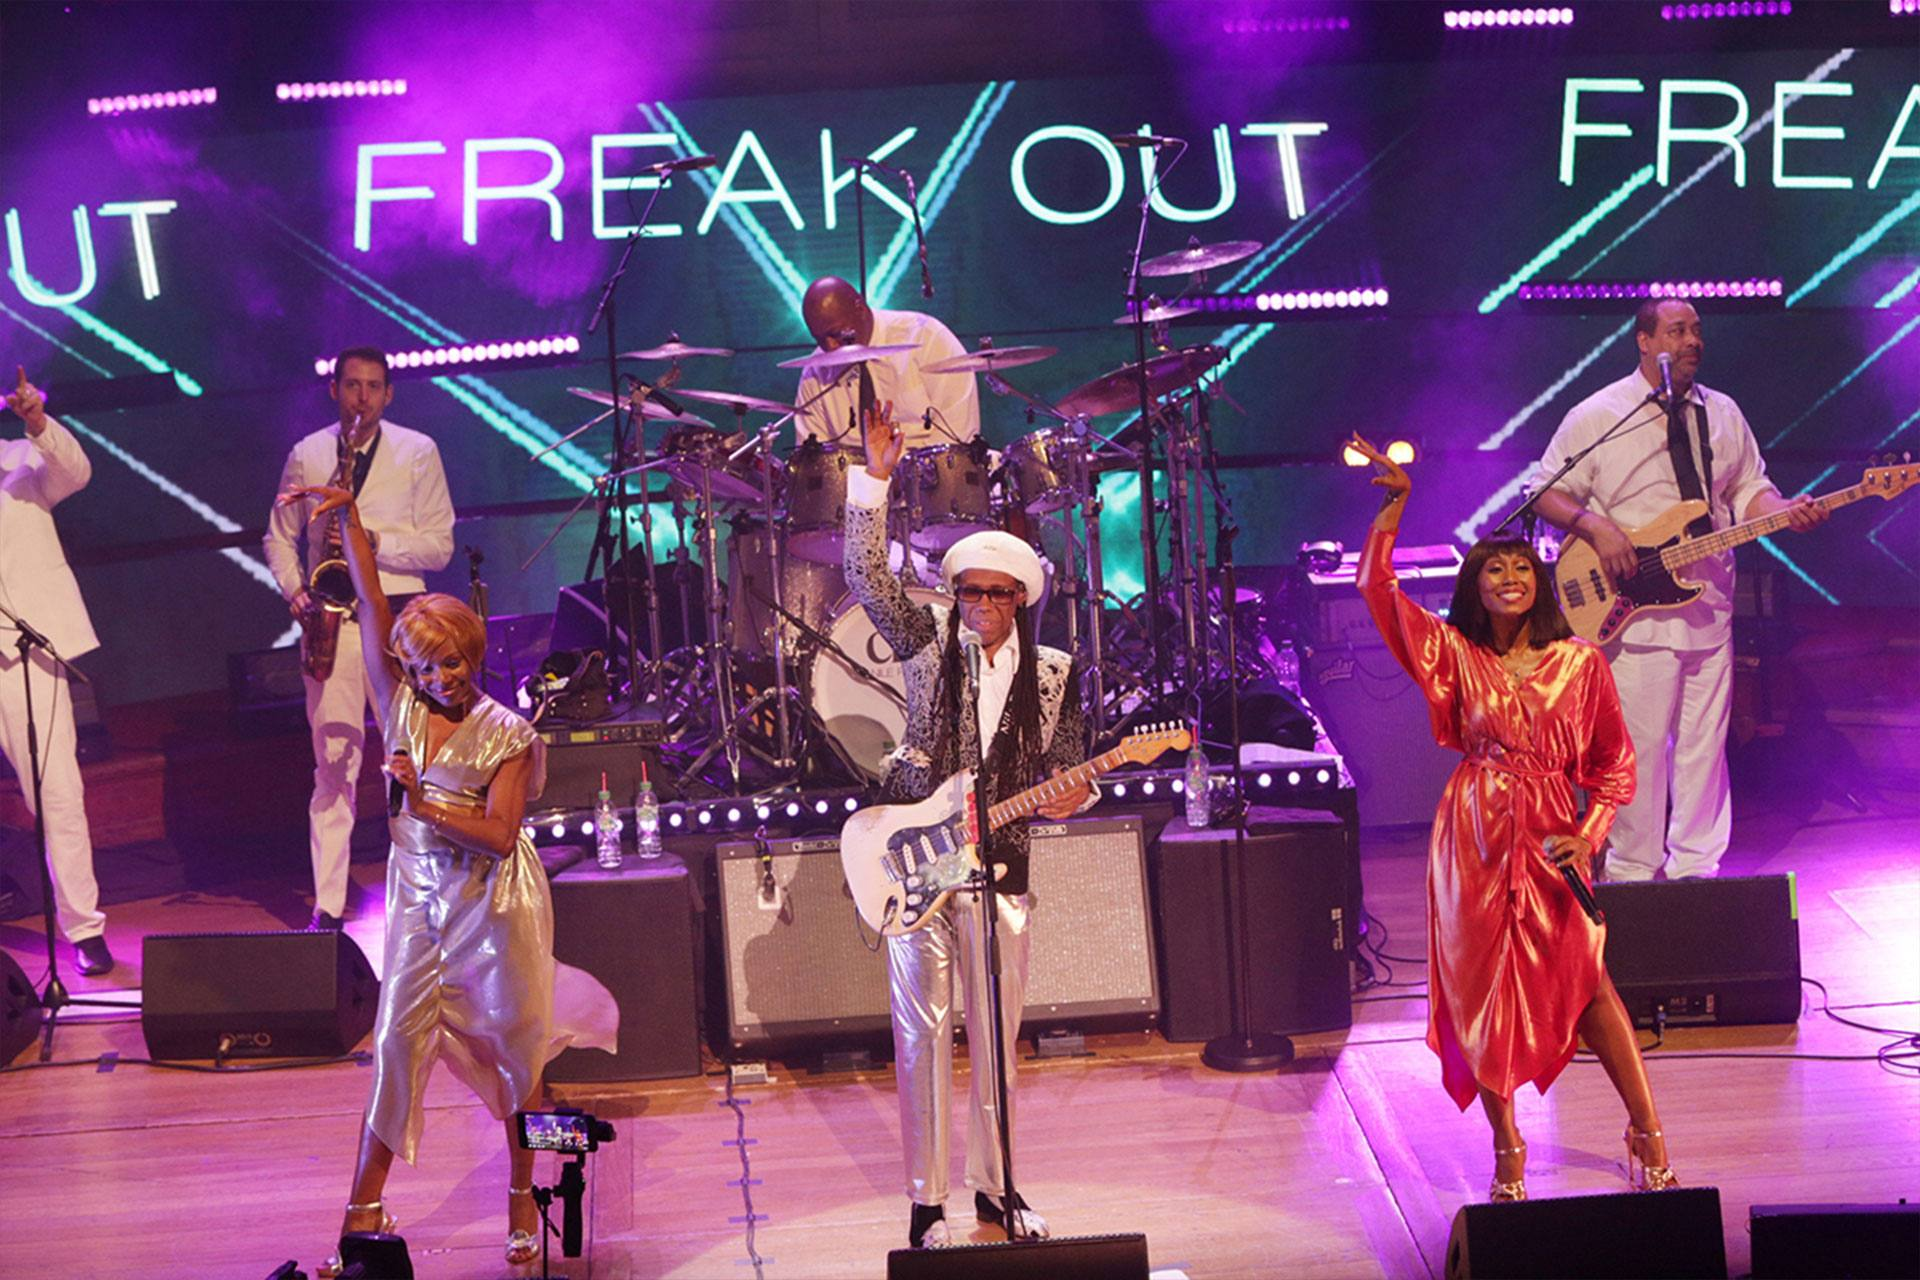 """Freak Out"" with Nile Rodgers & CHIC"